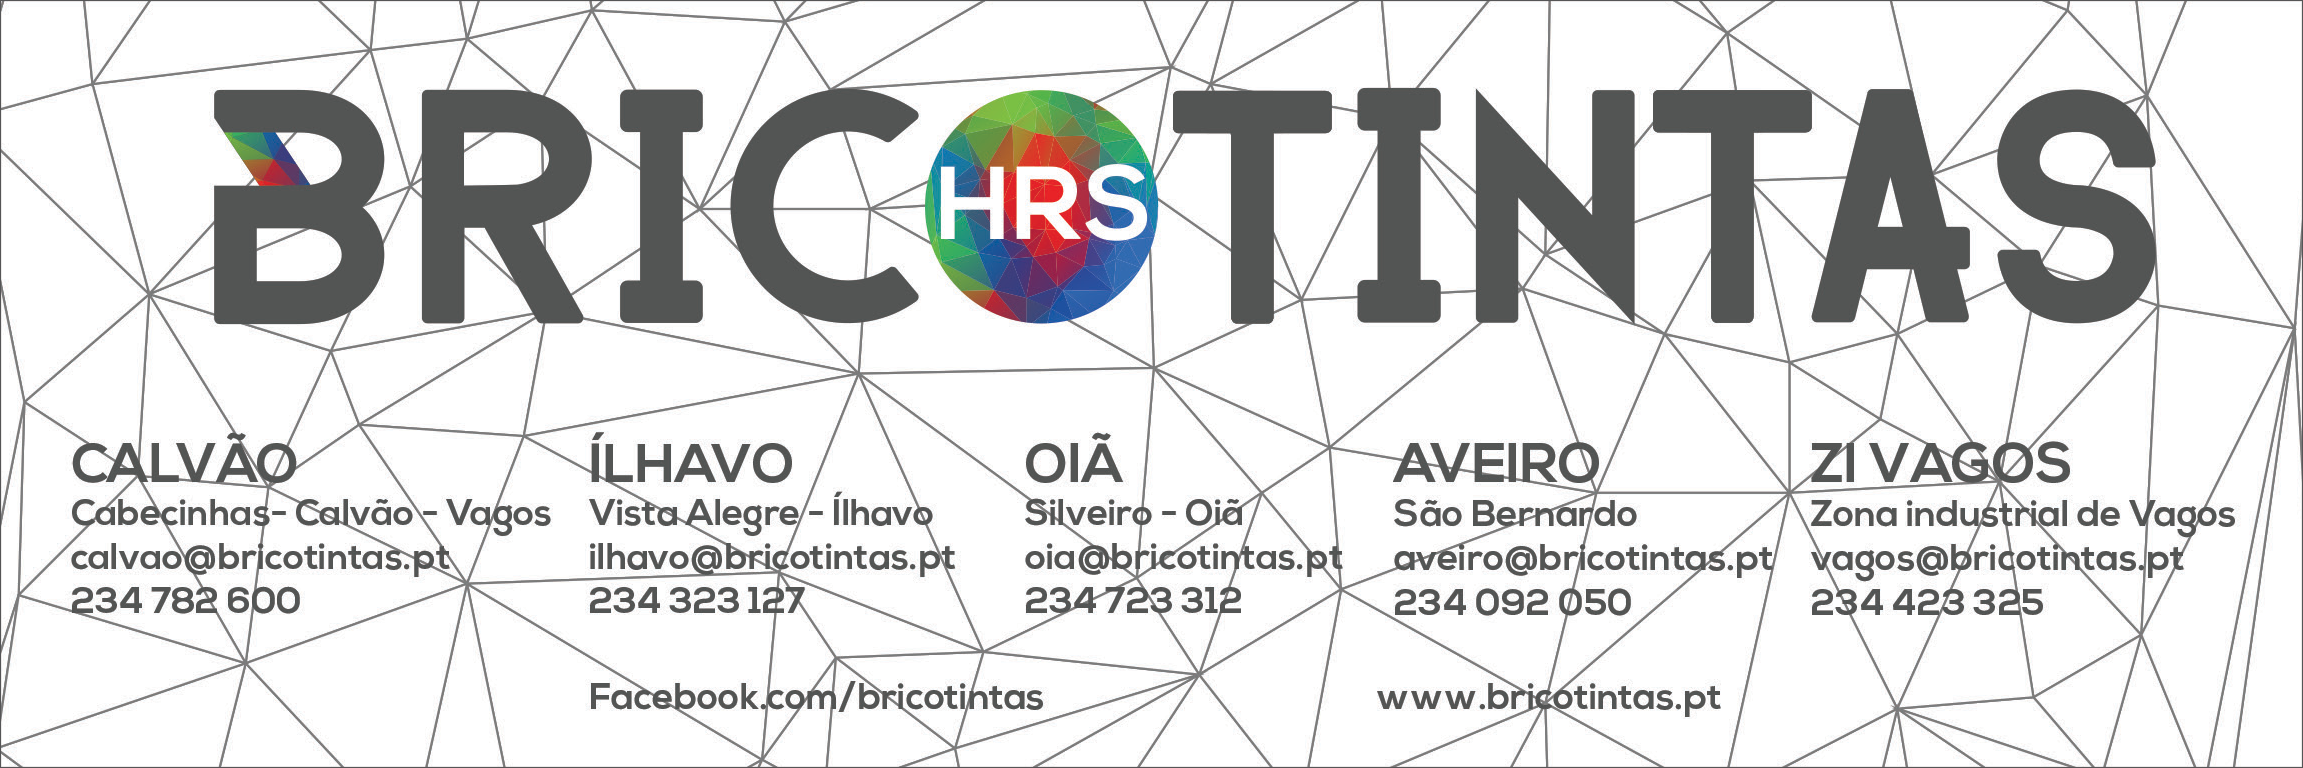 Bricotintas HRS